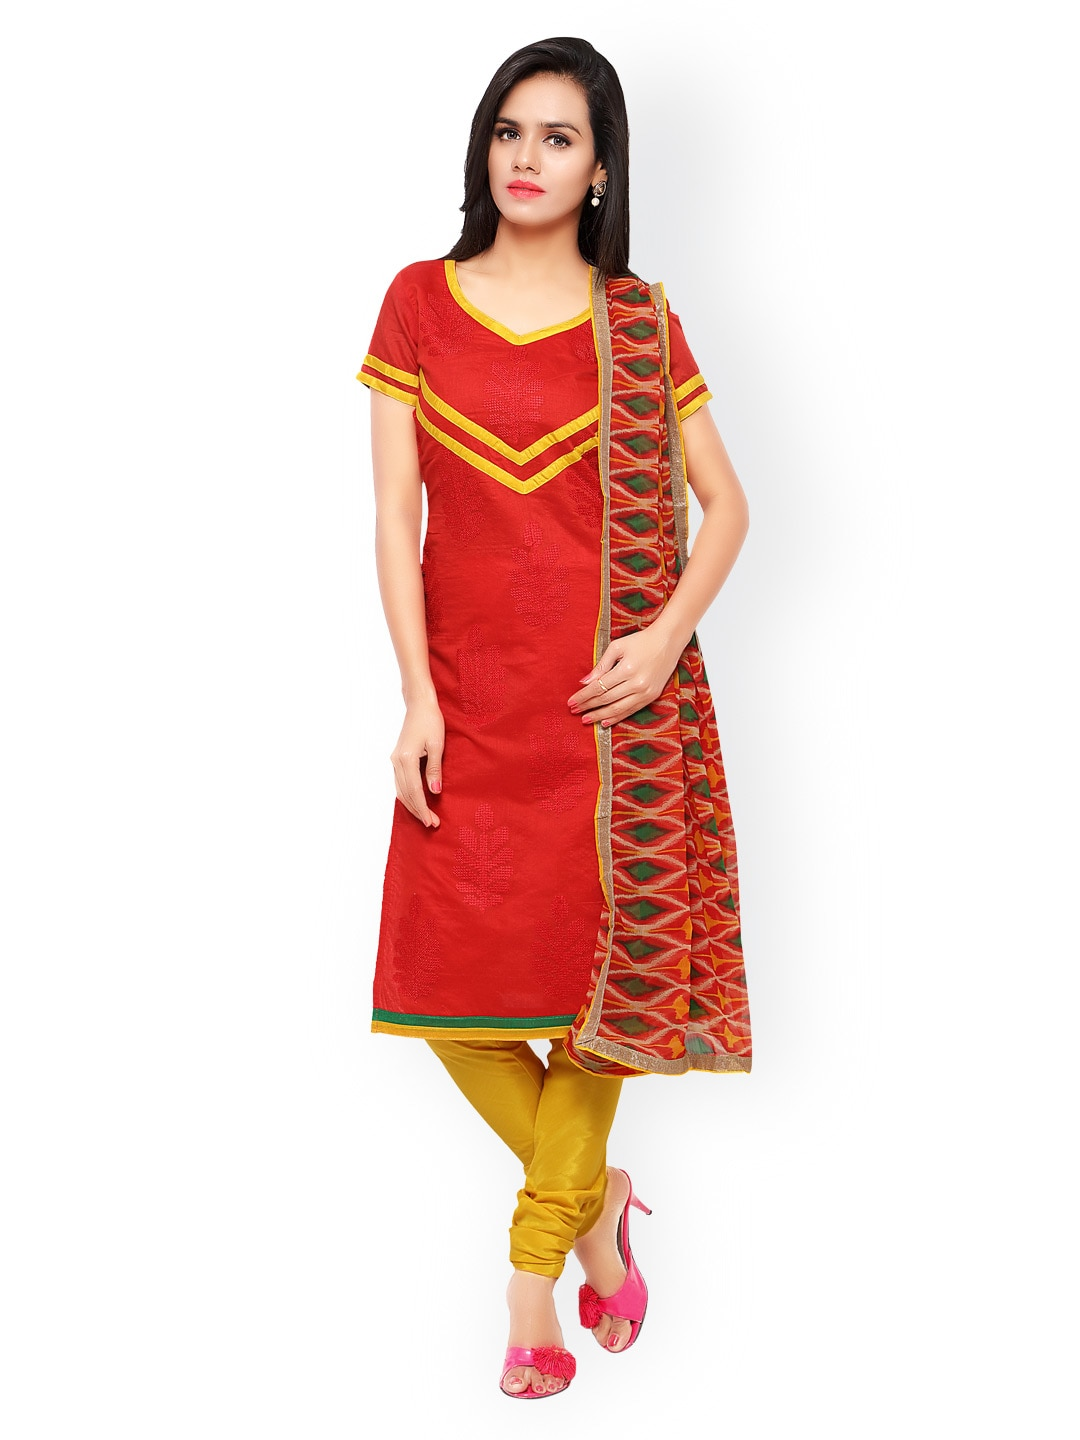 Touch Trends Red & Yellow Embroidered Chanderi Silk Unstitched Dress Material image